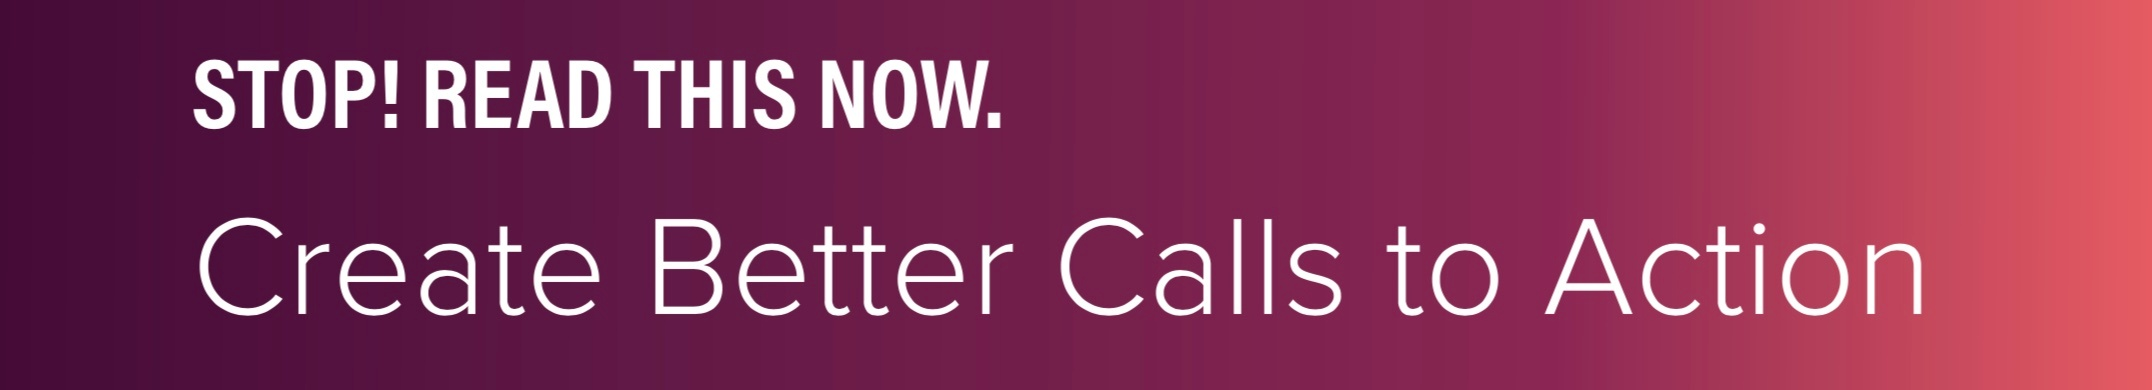 Create Better Calls to Action